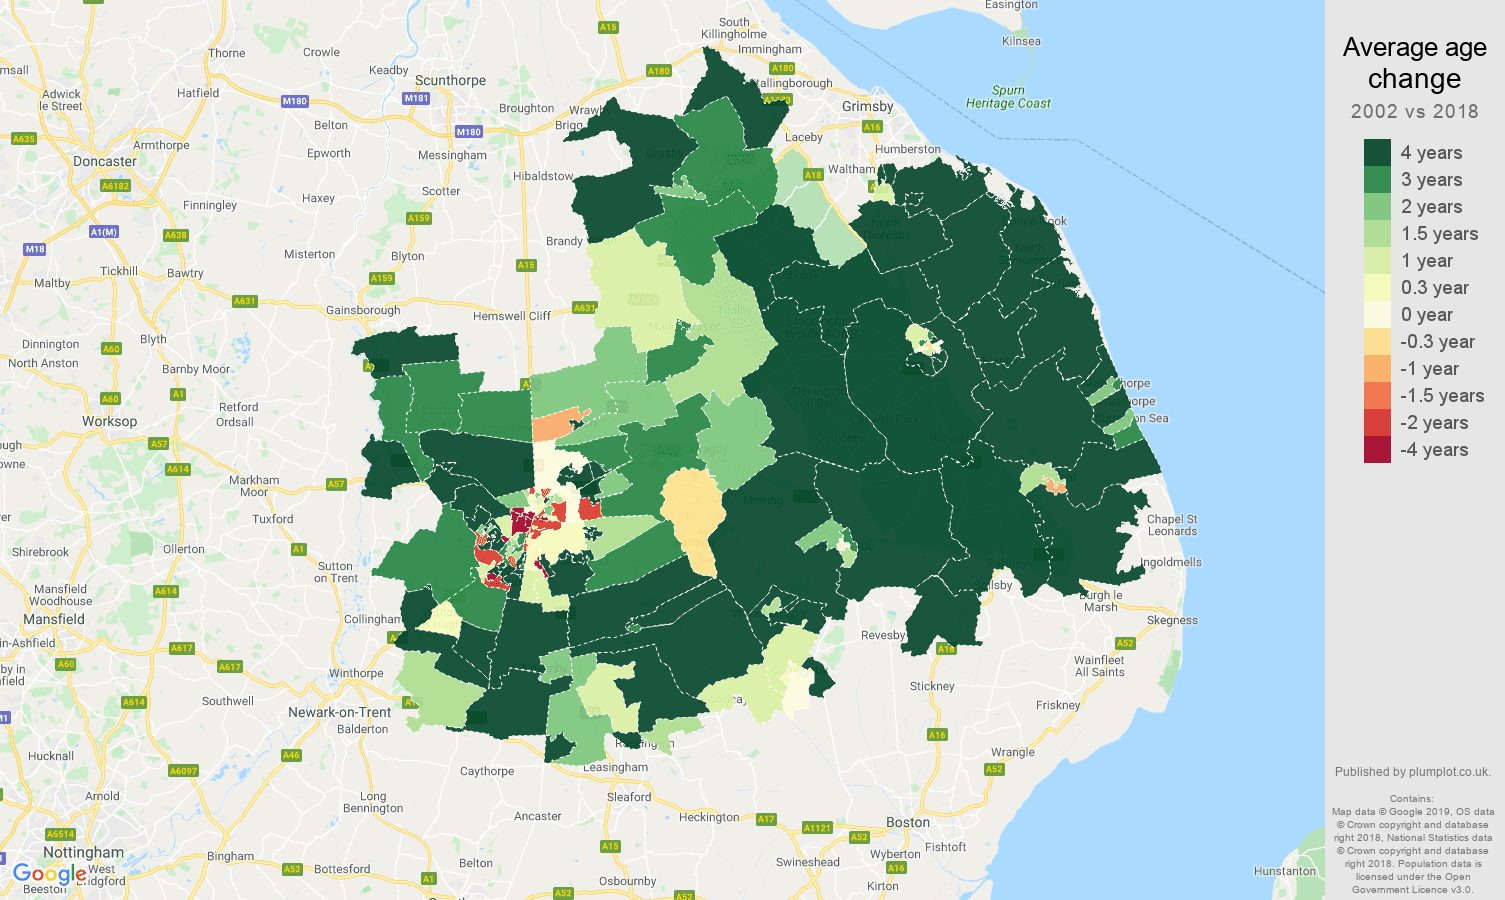 Lincoln average age change map